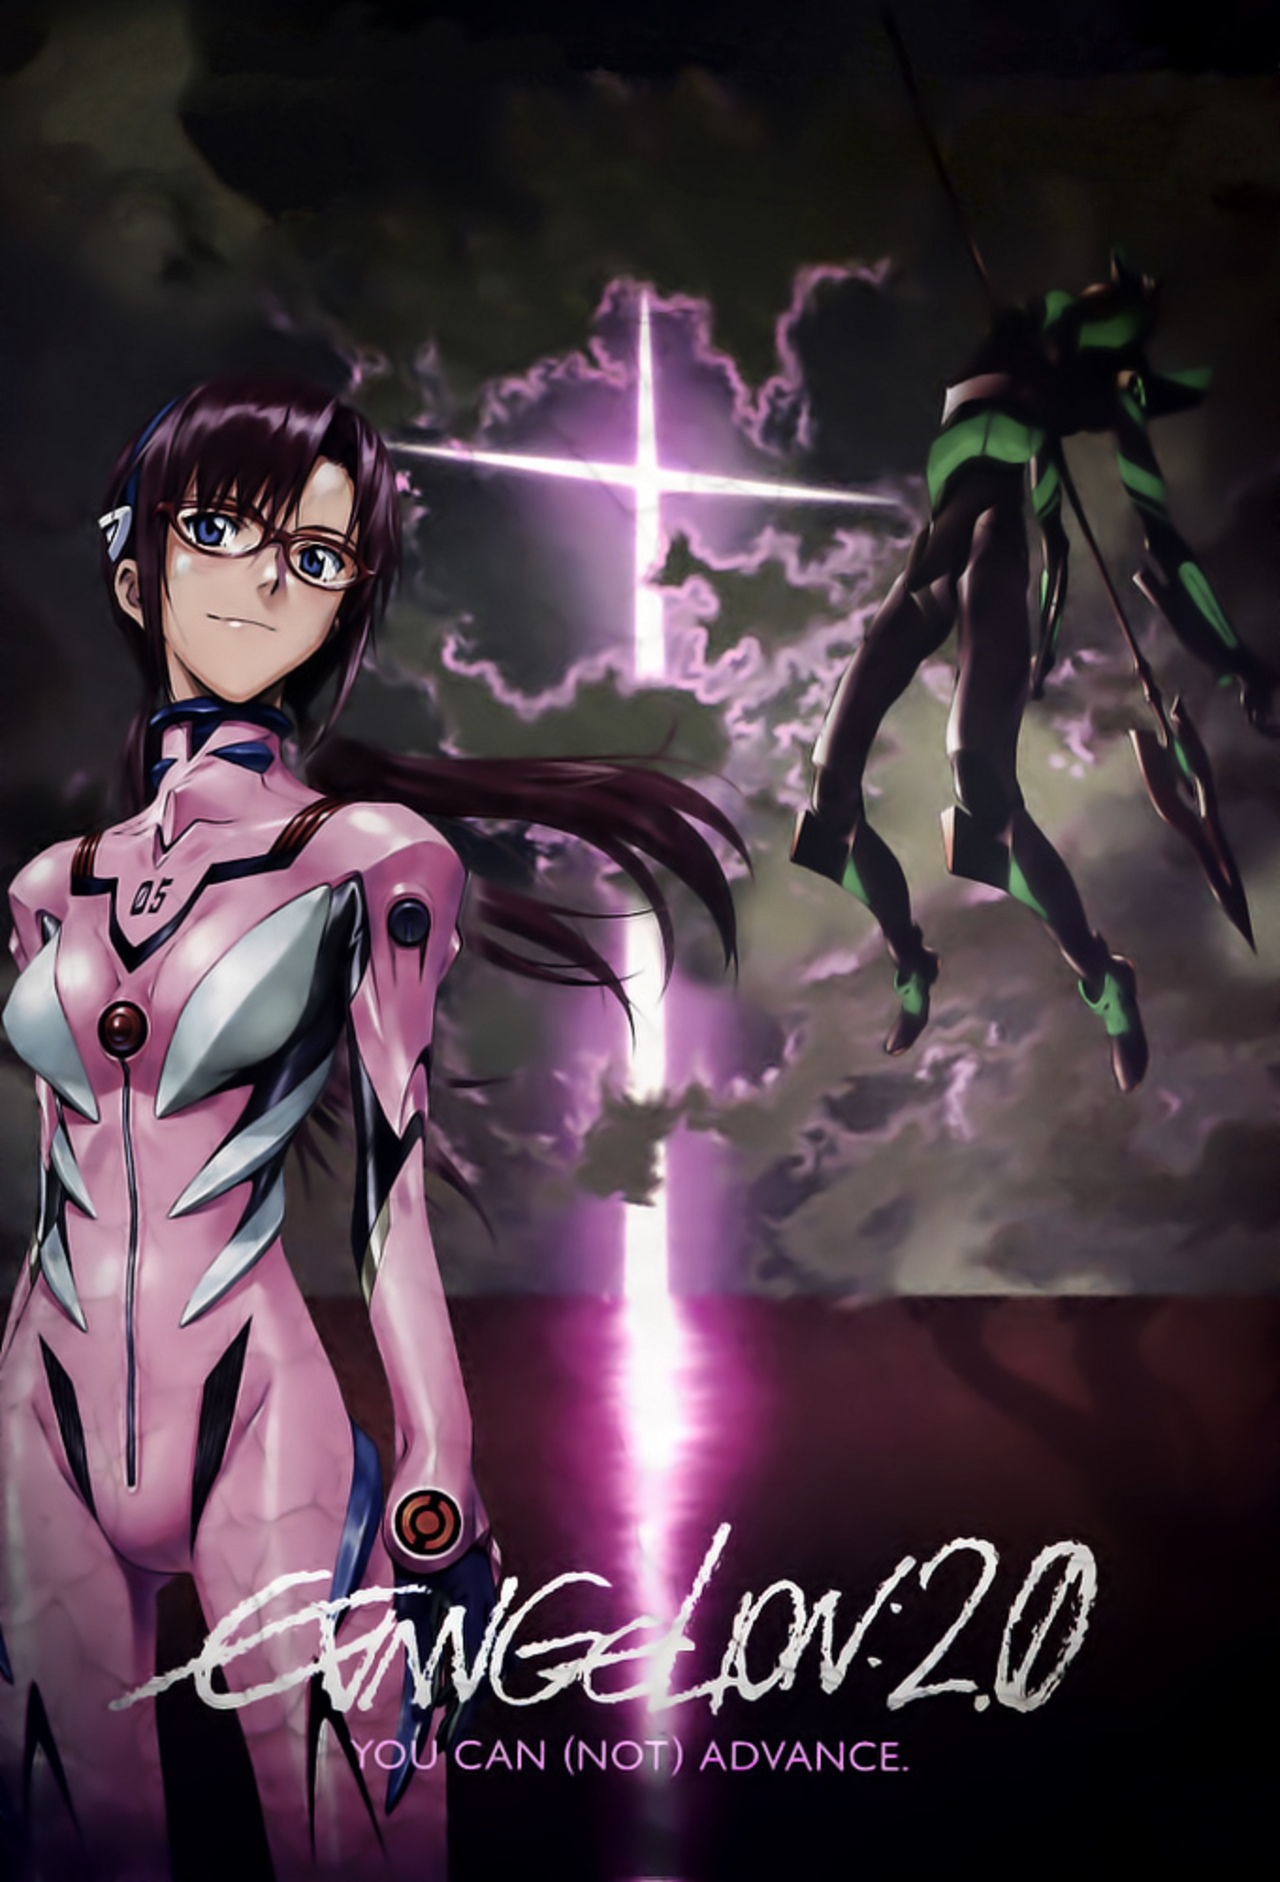 Evangelion: 2.0 You Can (Not) Advance kapak